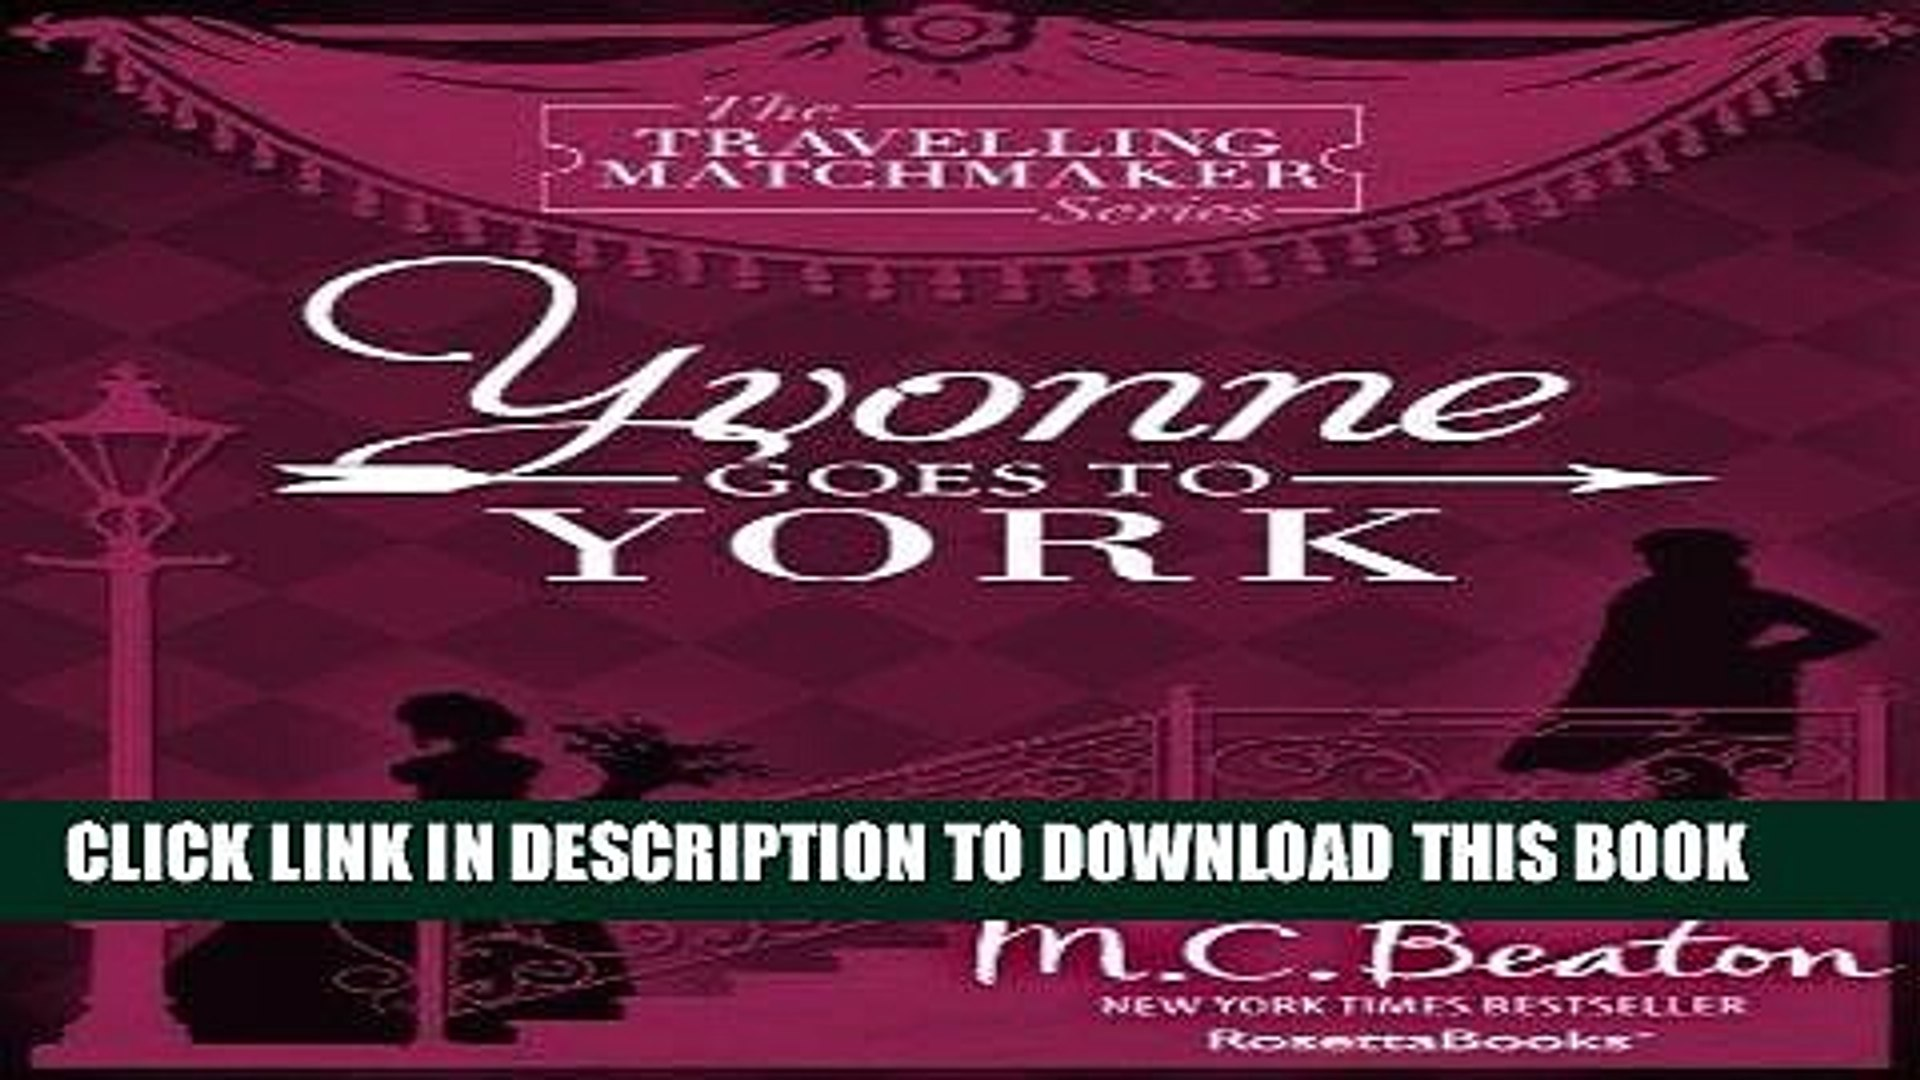 Best Seller Yvonne Goes To York (The Traveling Matchmaker series Book 6) Free Read